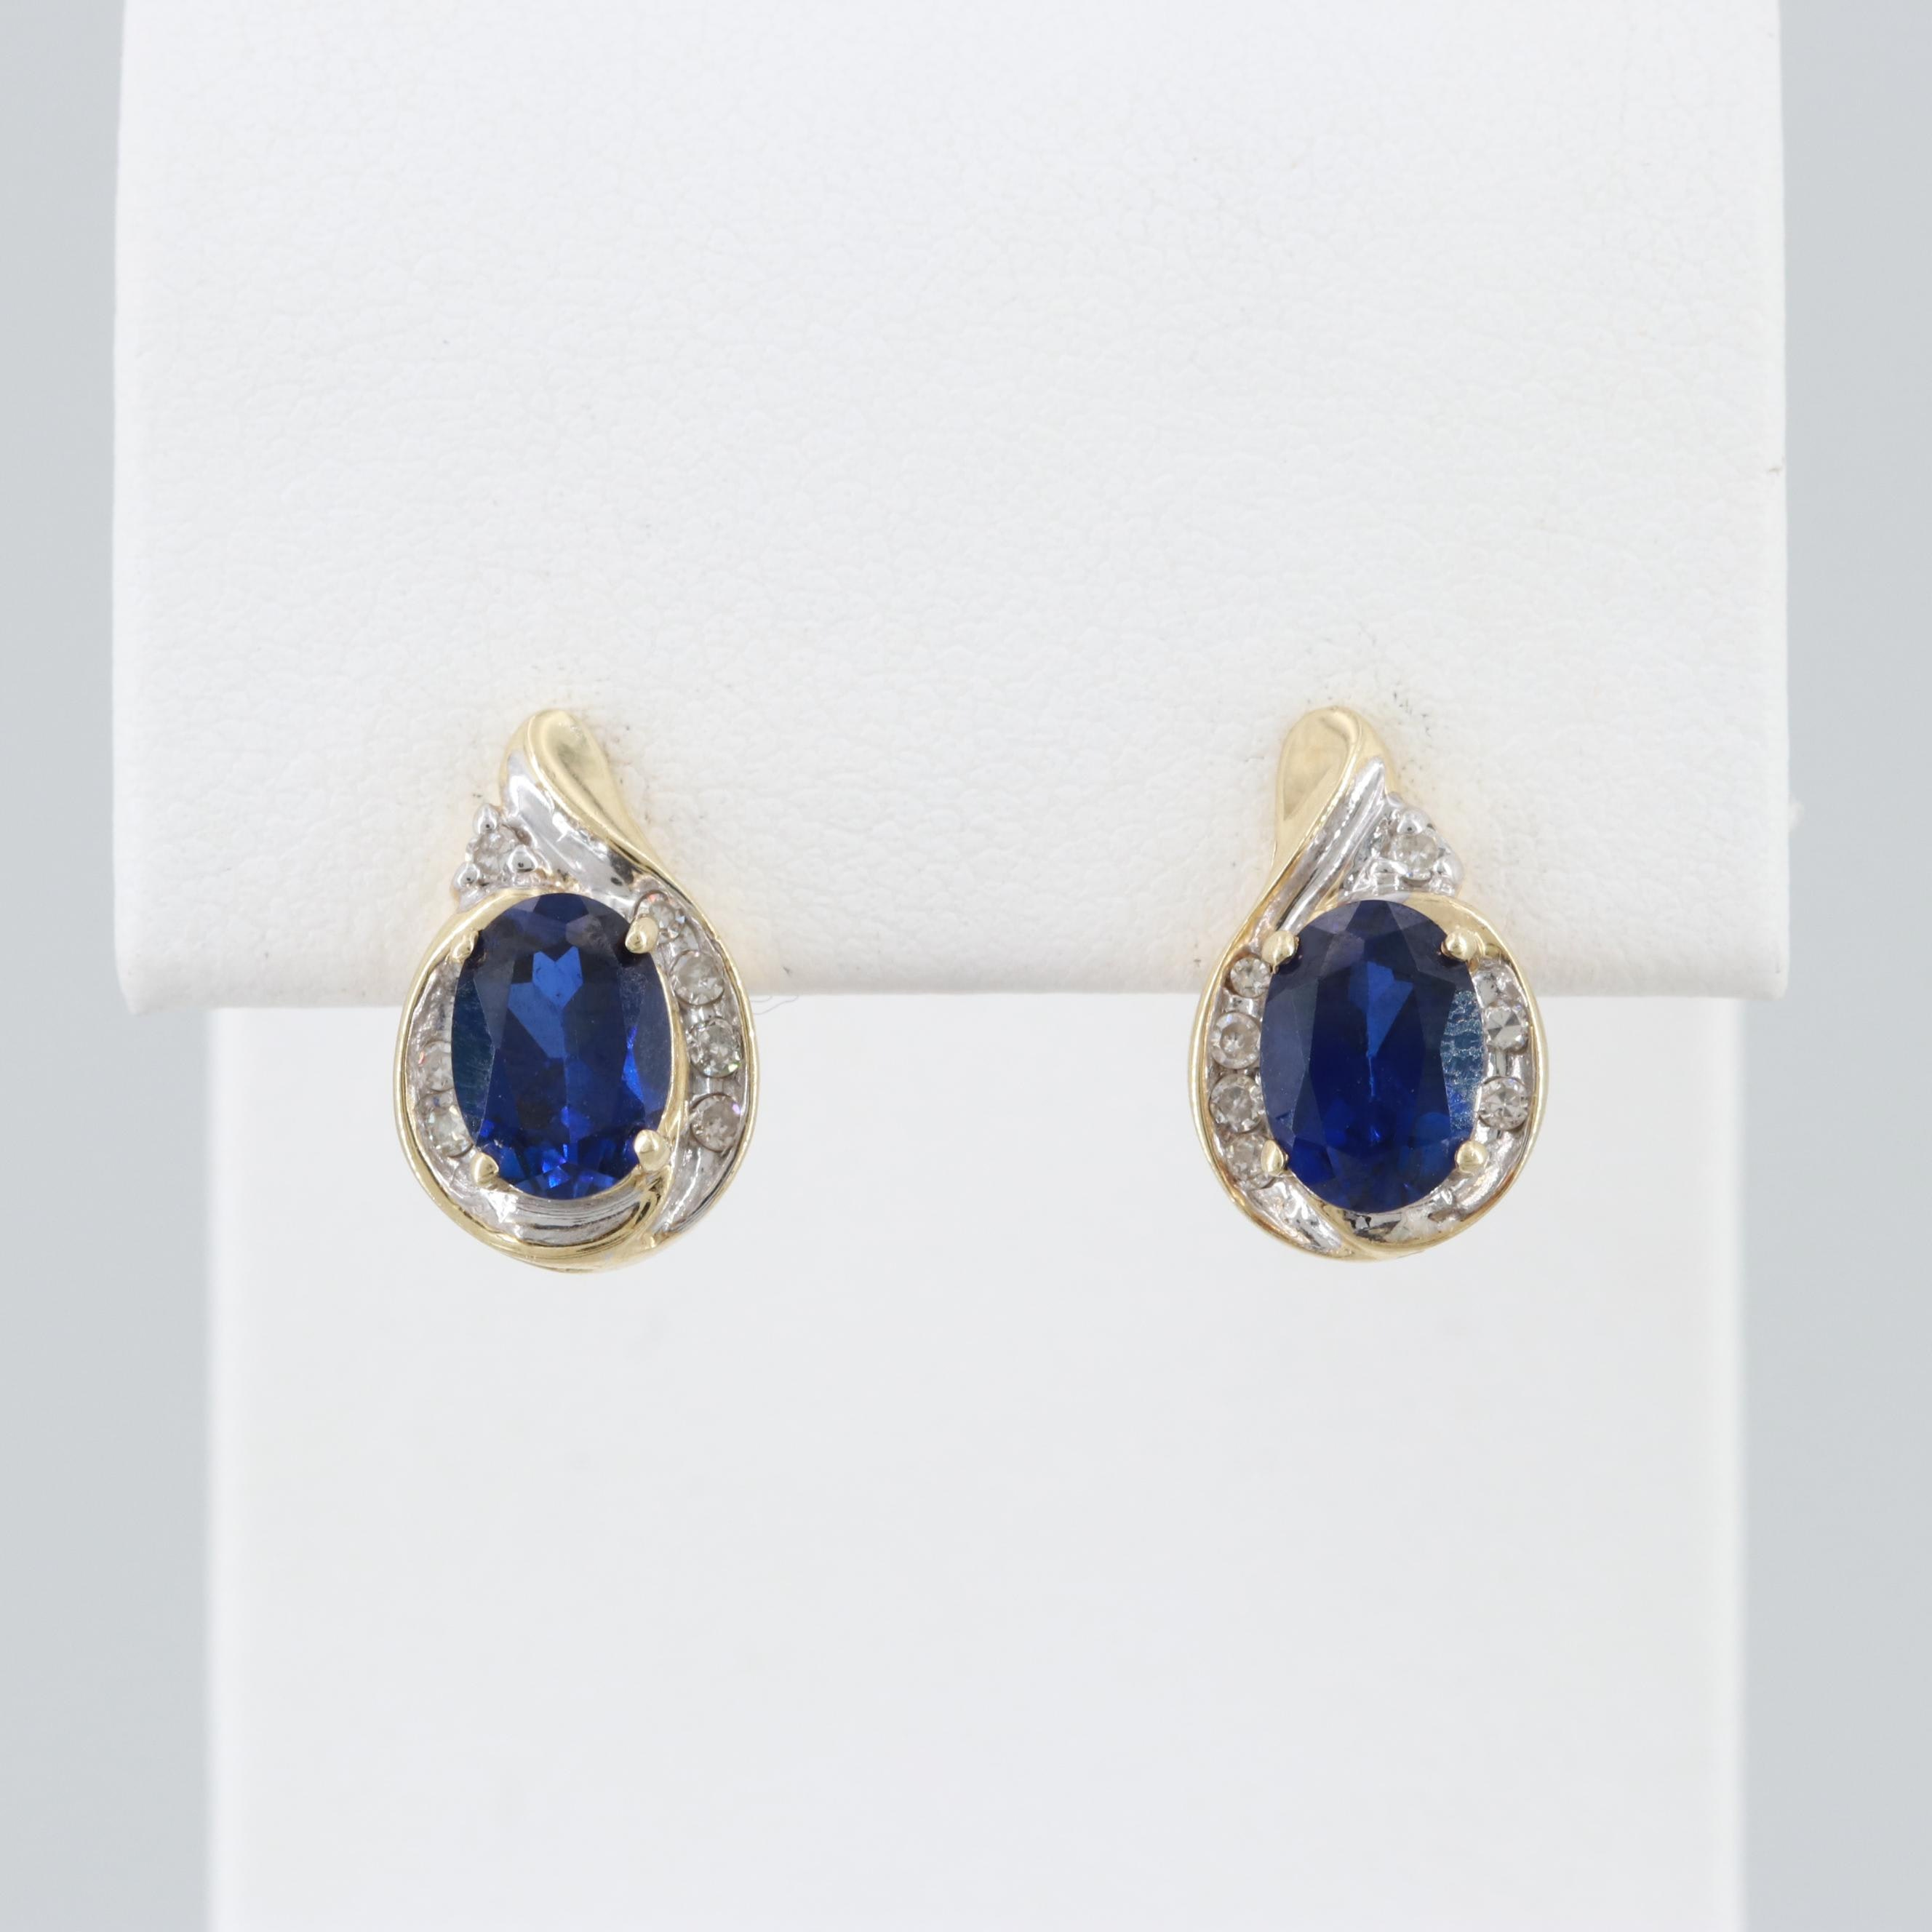 10K Yellow Gold Synthetic Blue Sapphire and Diamond Earrings